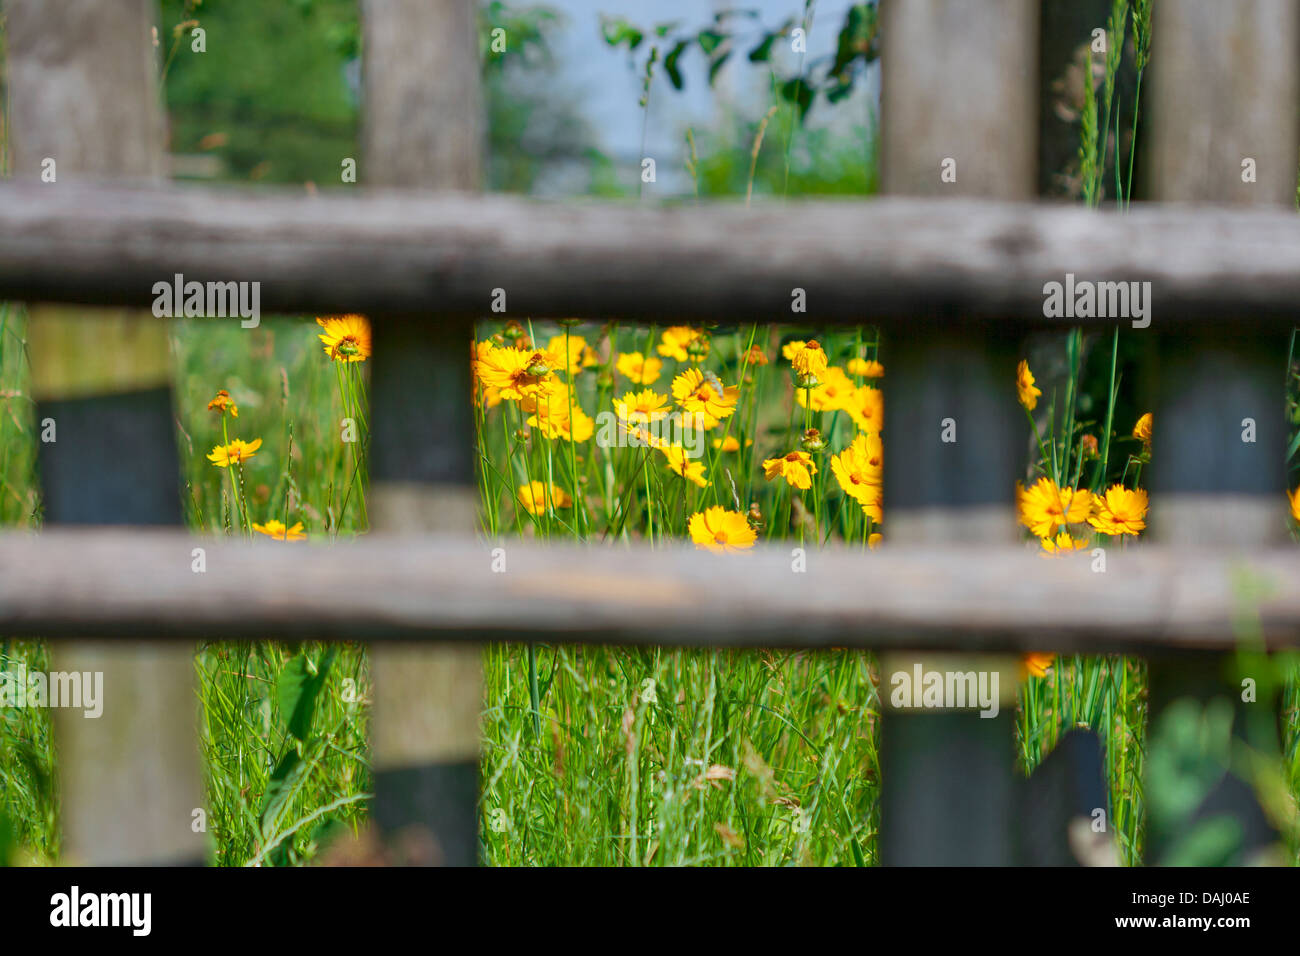 Beautiful wild yellow flowers behind the wooden fence stock photo beautiful wild yellow flowers behind the wooden fence izmirmasajfo Gallery